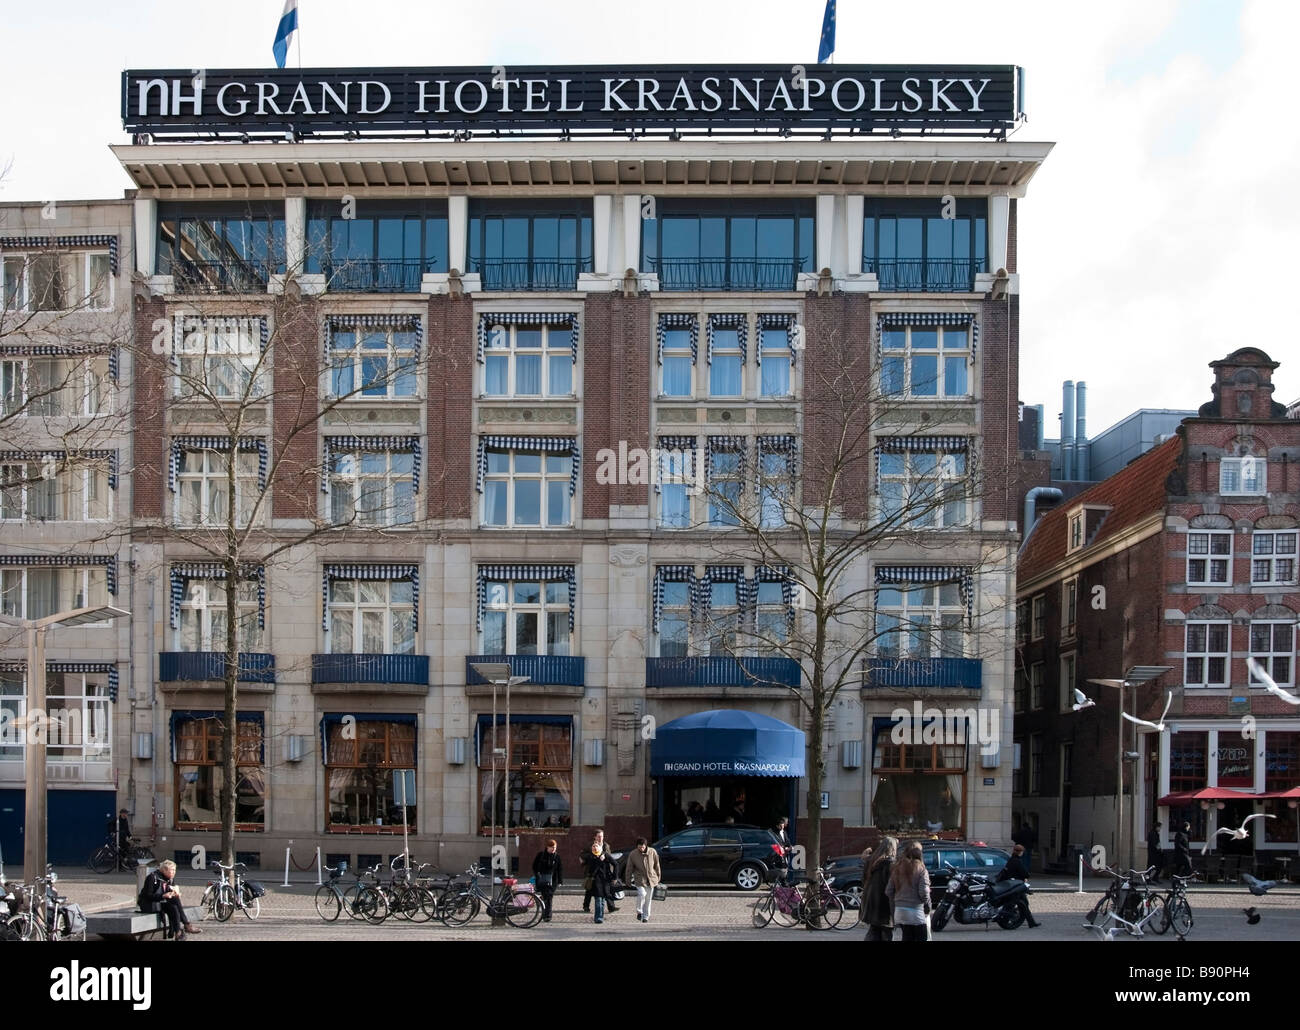 The Grand Hotel Krasnapolsky Amsterdam Stock Photo